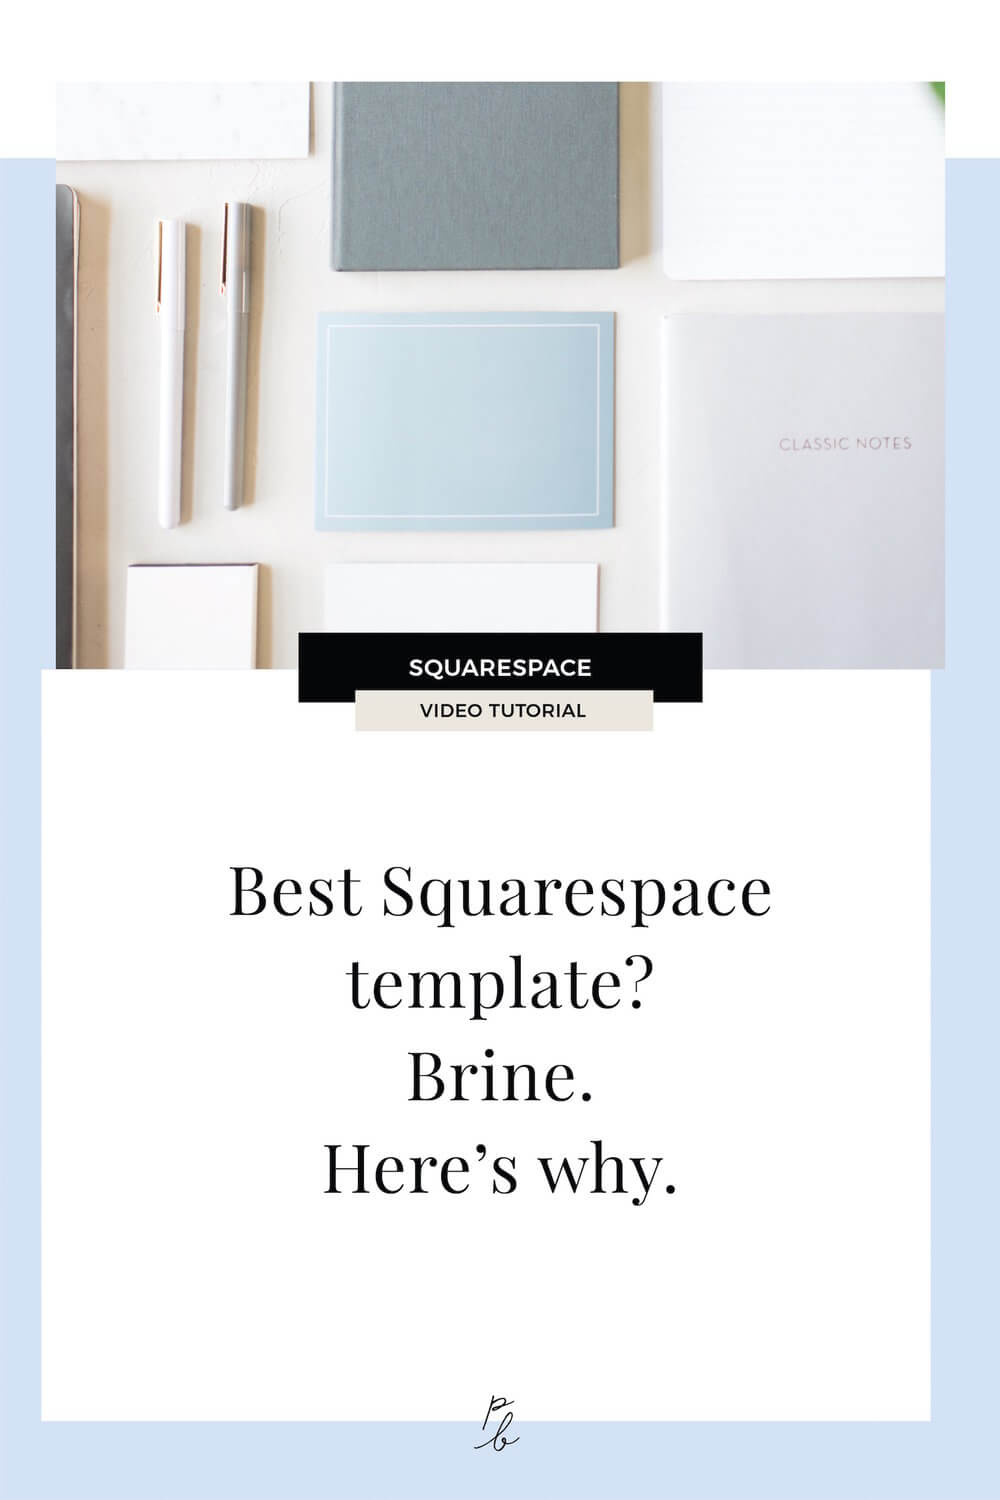 What Is The Best Squarespace Template? Brine. Here's Why Regarding Best Squarespace Template